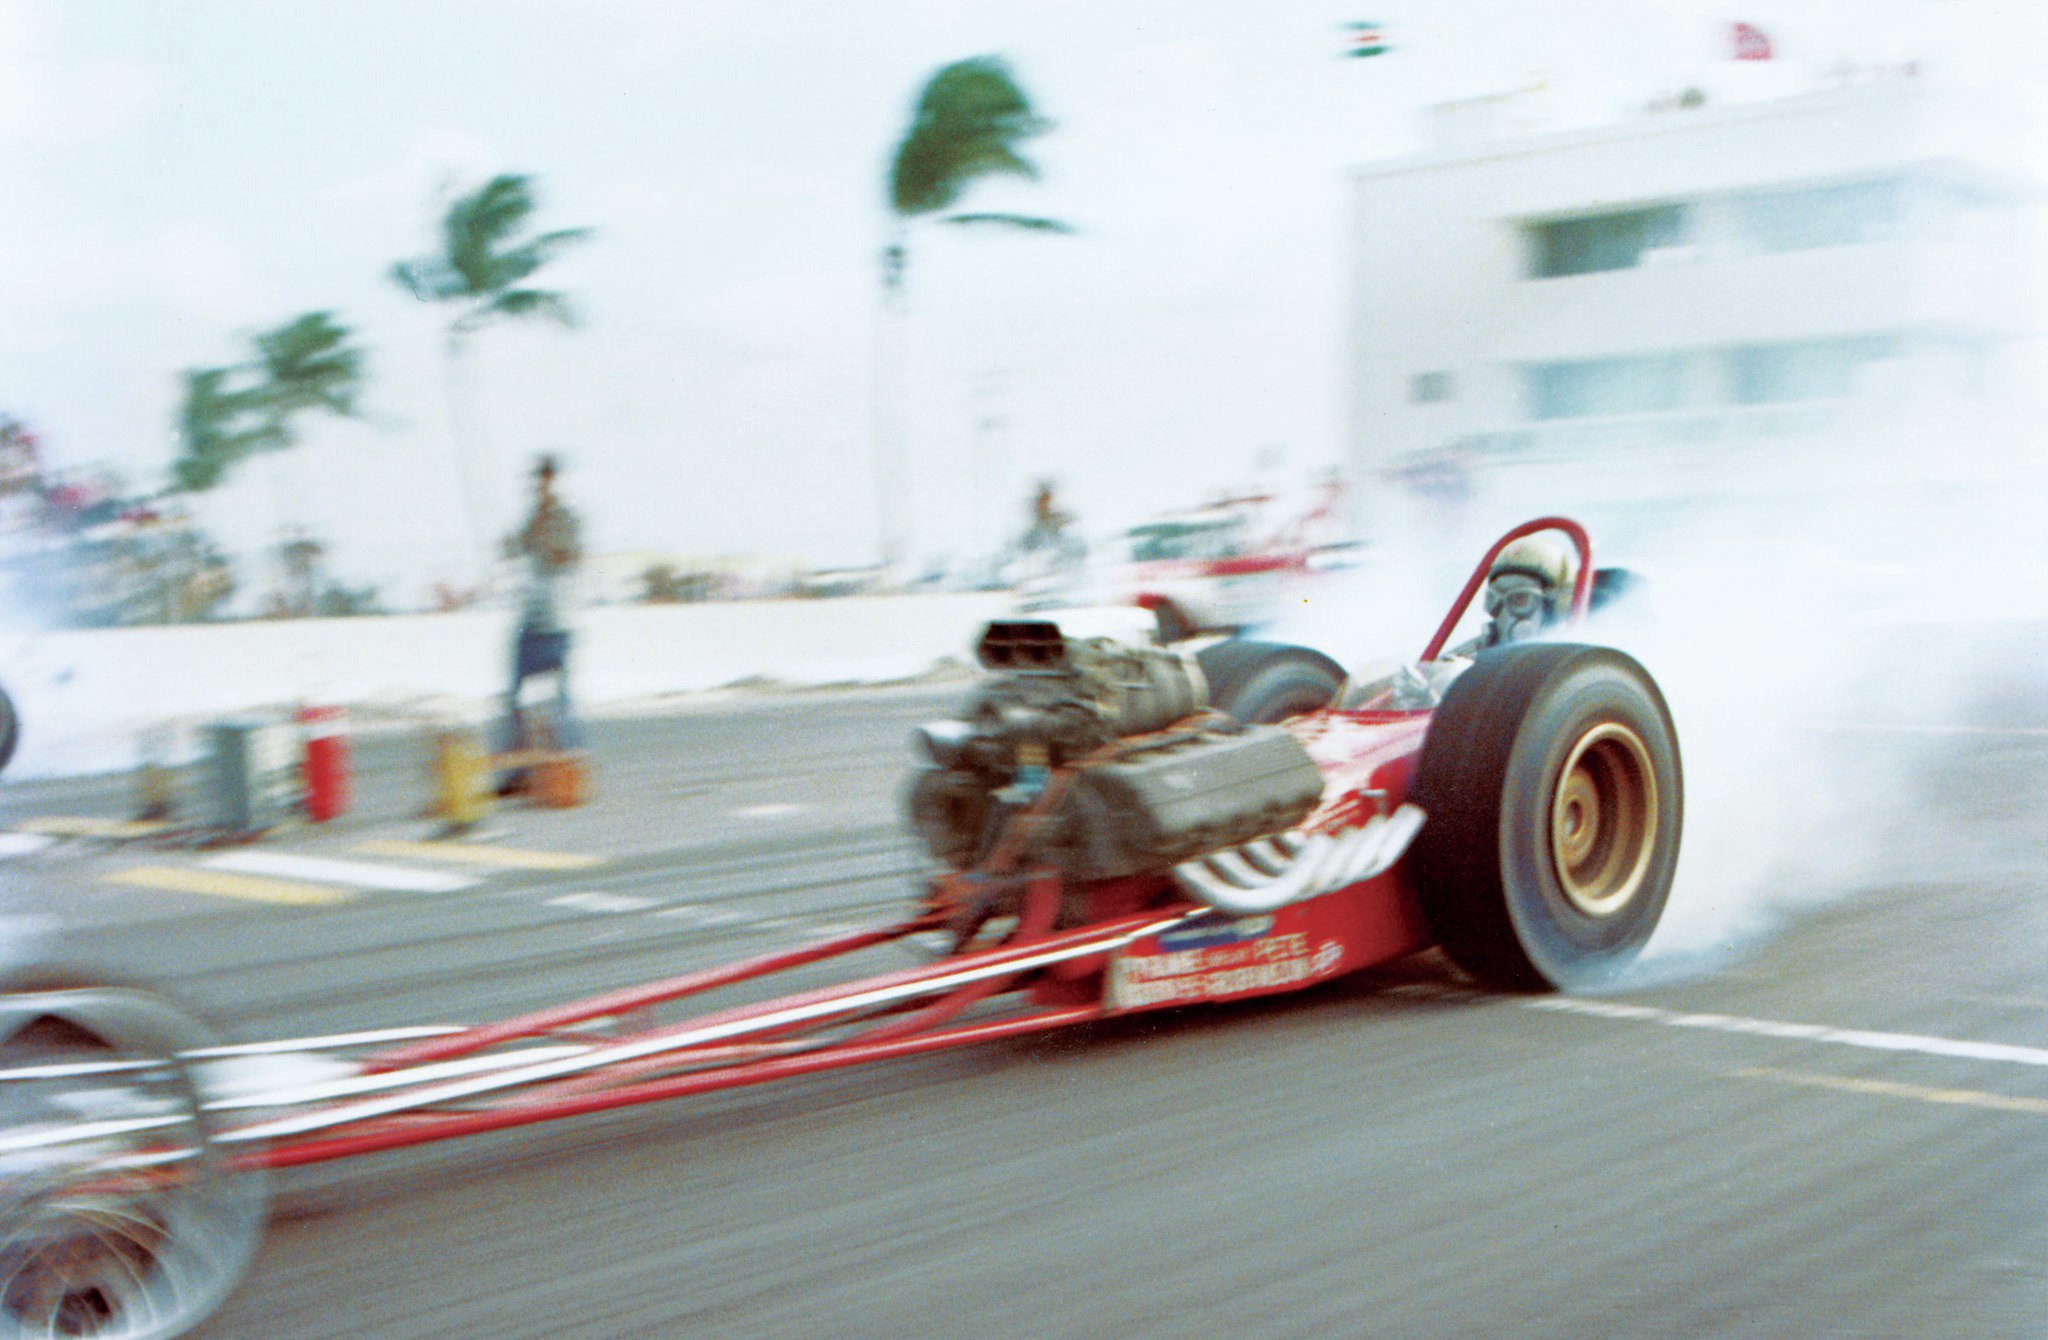 Pete's first SOHC 427 Ford was installed in a Woody Gilmore chassis (Tinker Toy Too), seen here at Miami-Hollywood Dragway in 1966. Pete and others were plagued with early bearing problems due to nitro fuel dilution of the oil. A high-volume, high-pressure oiling system by Milodon (originally developed for the 426 Hemi) solved this ailment for all SOHC Ford racers.